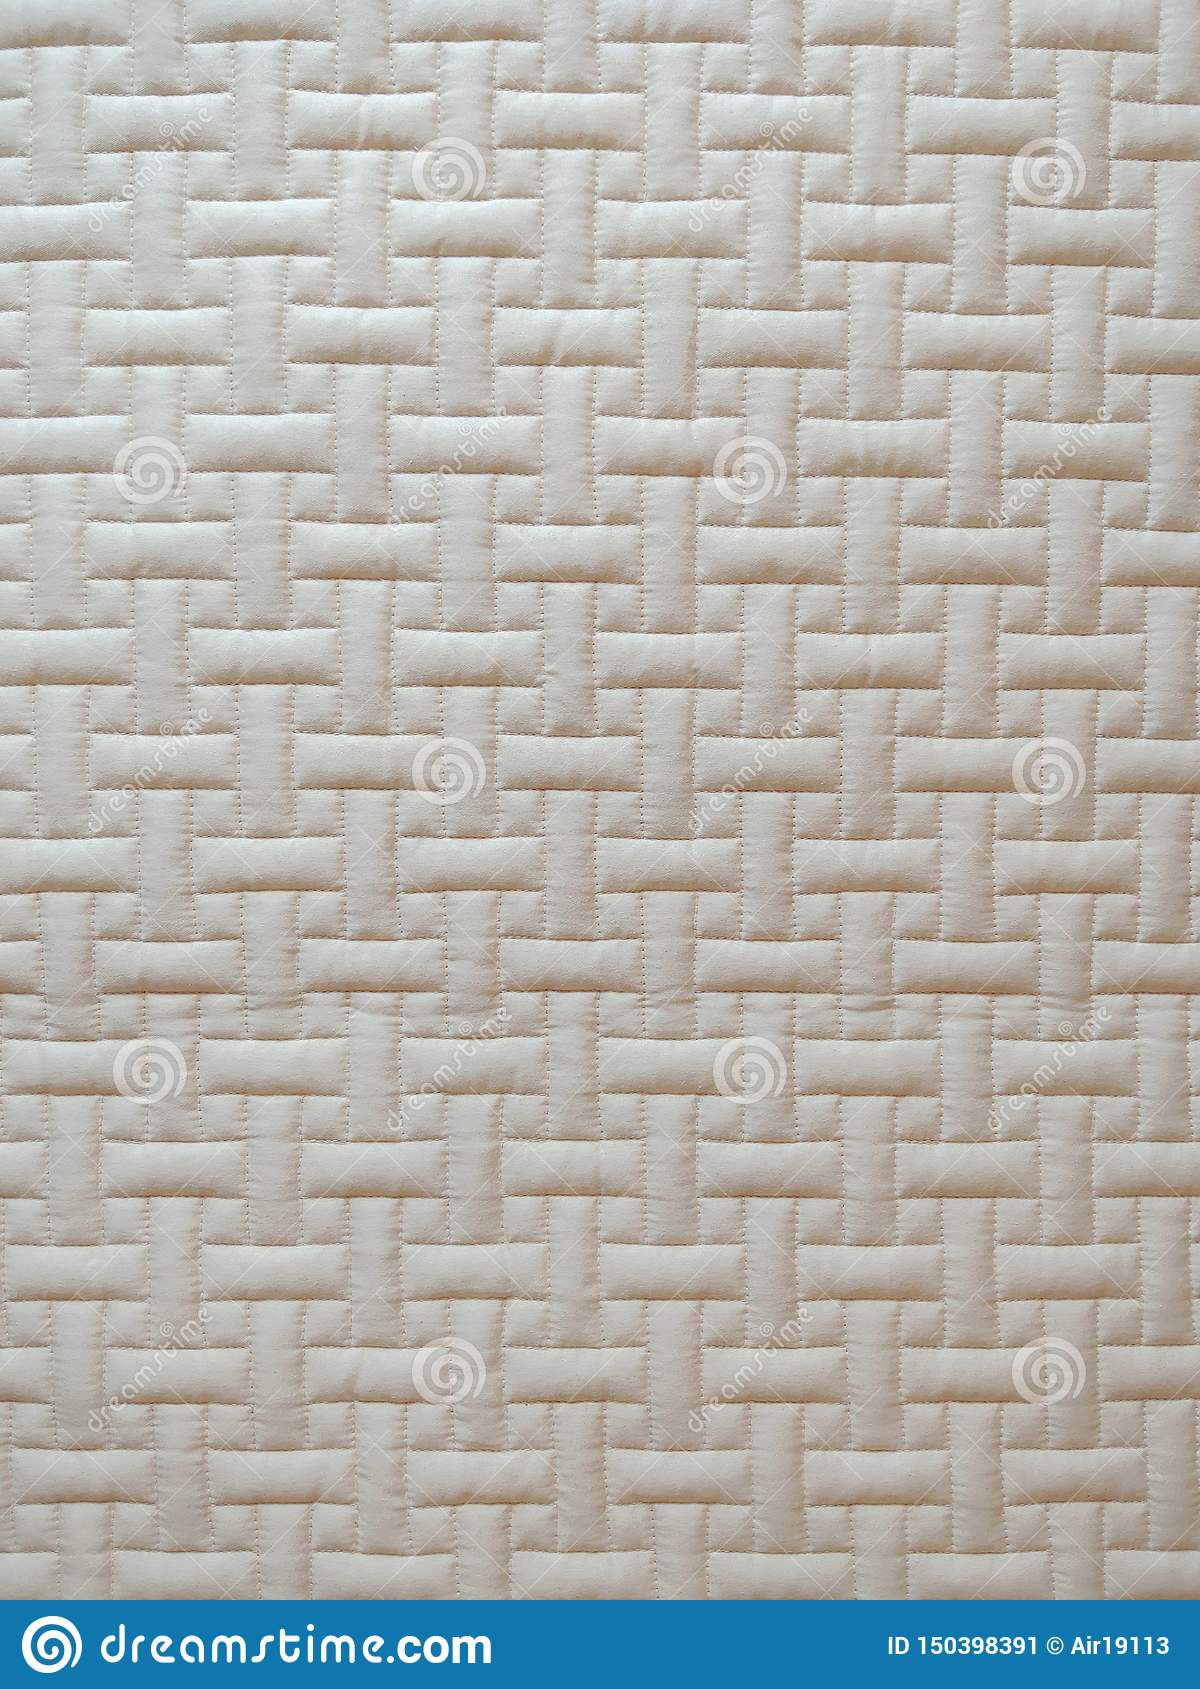 Closeup of sofa rectangle pattern texture background